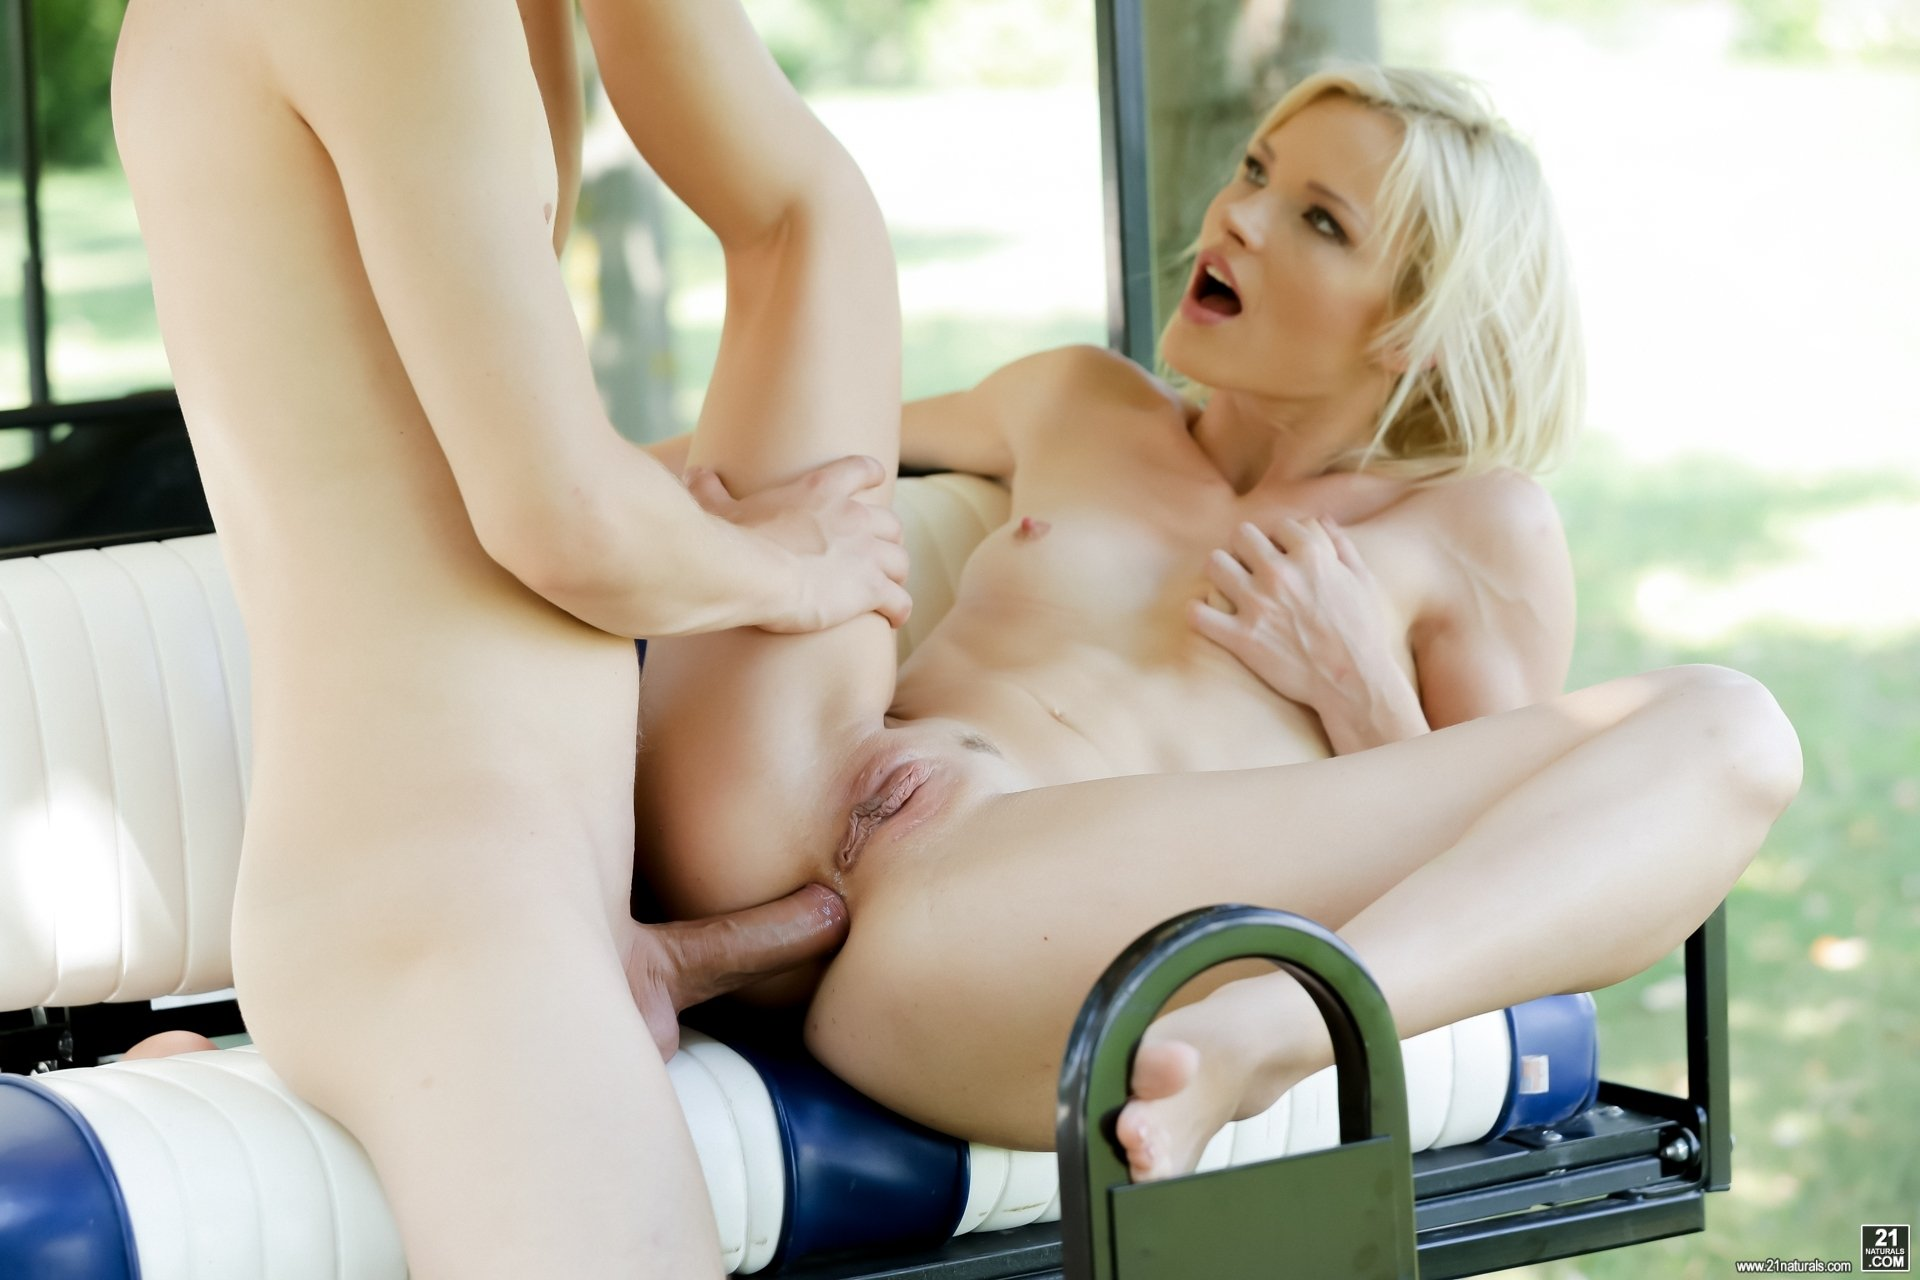 milf anal creampie hd there